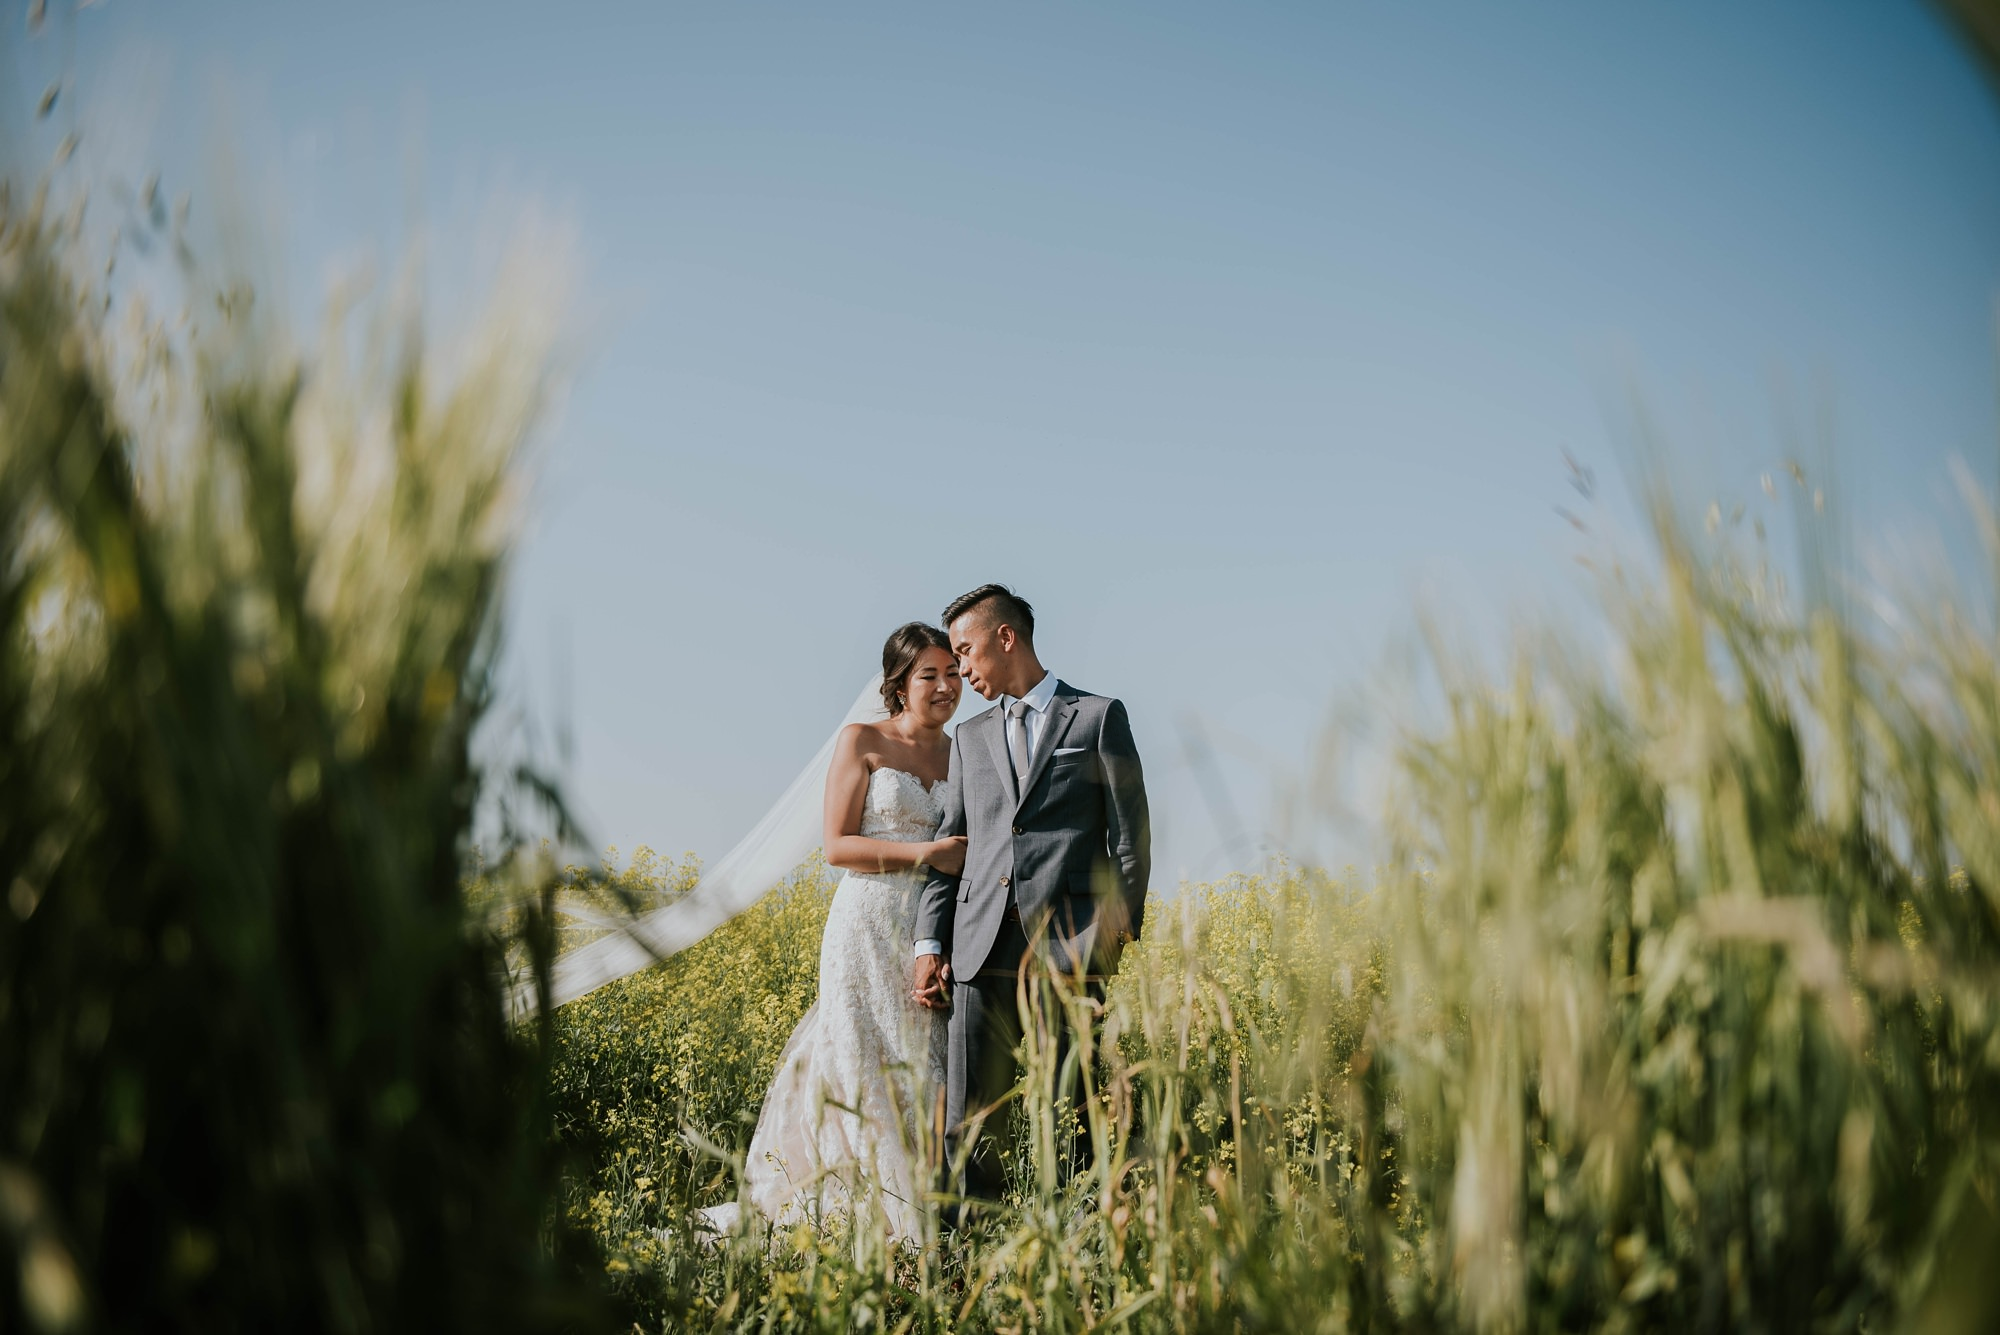 classic and modern barn wedding reception with bride and groom for bridal portraits at willow lane barn wedding in olds alberta